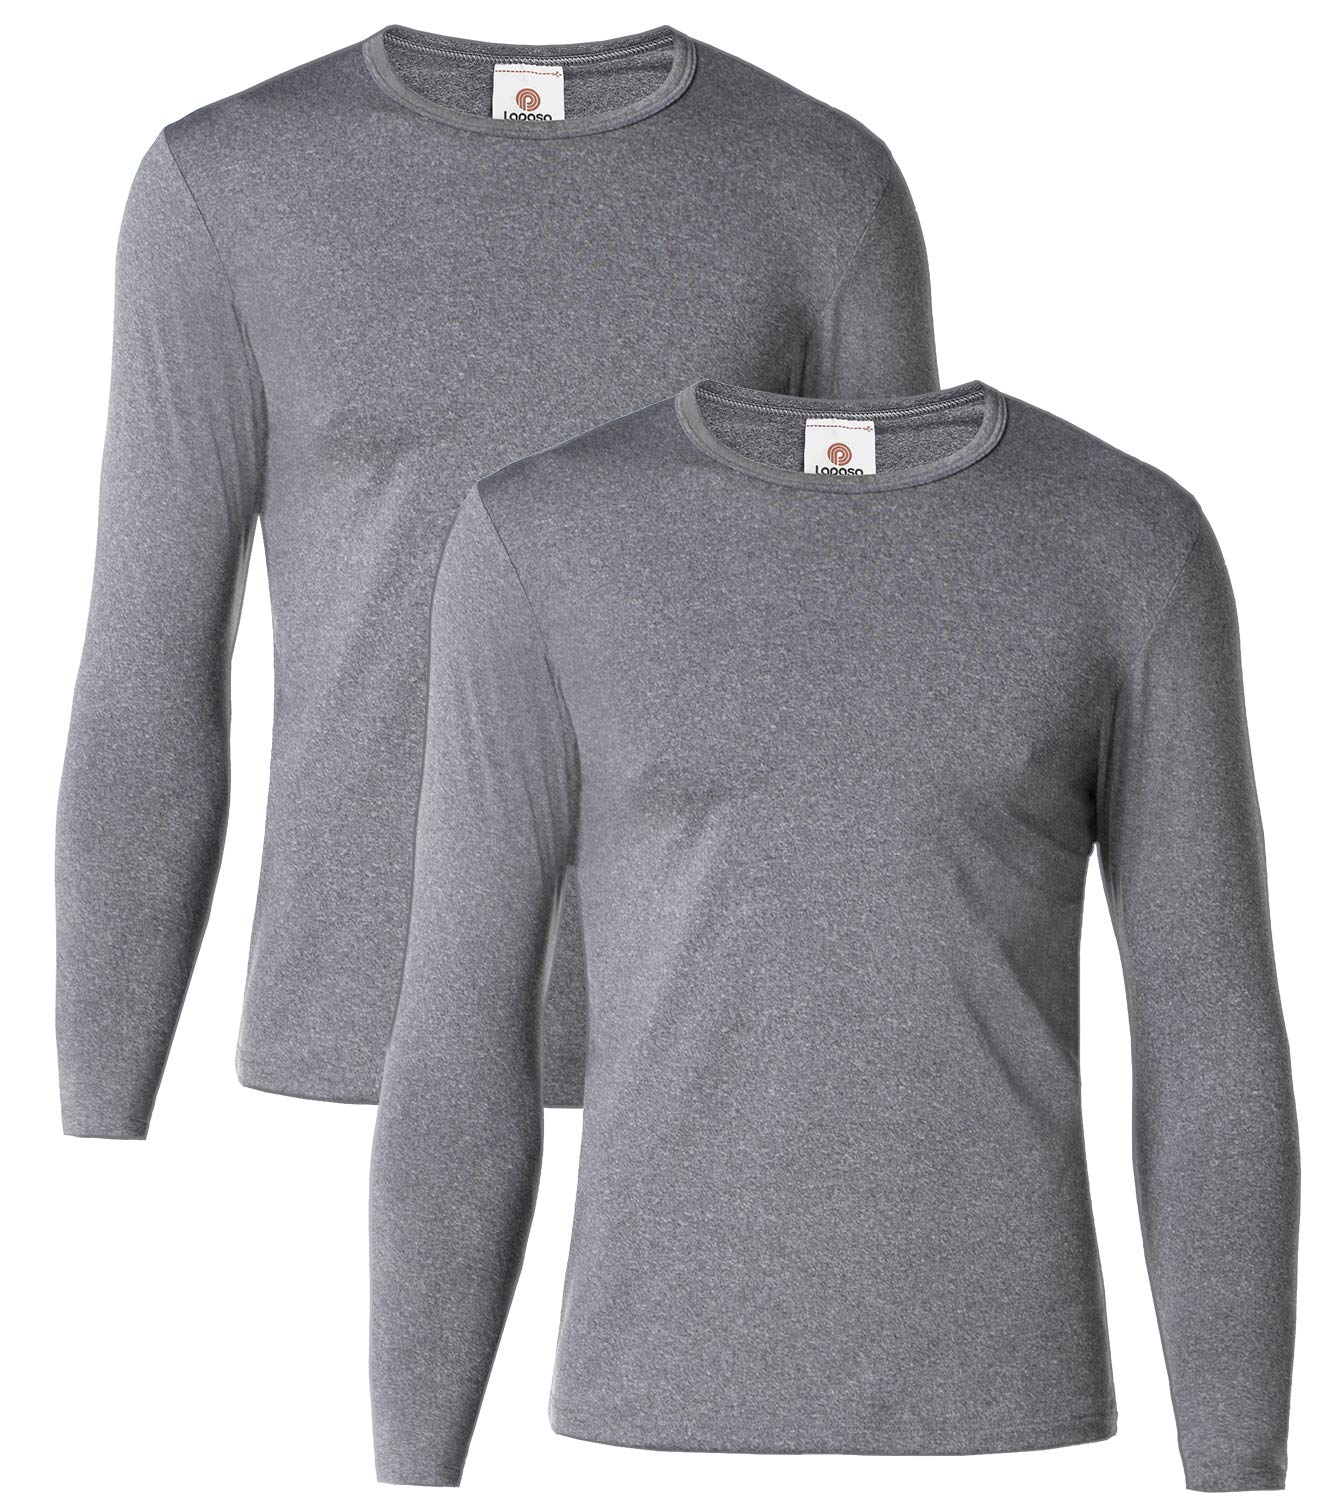 LAPASA Men's Thermal Underwear Tops Fleece Lined Base Layer Long Sleeve Shirts 2 Pack M09 (M Chest 38''-40'' Sleeve 22.8'', Midweight Dark Grey) by LAPASA